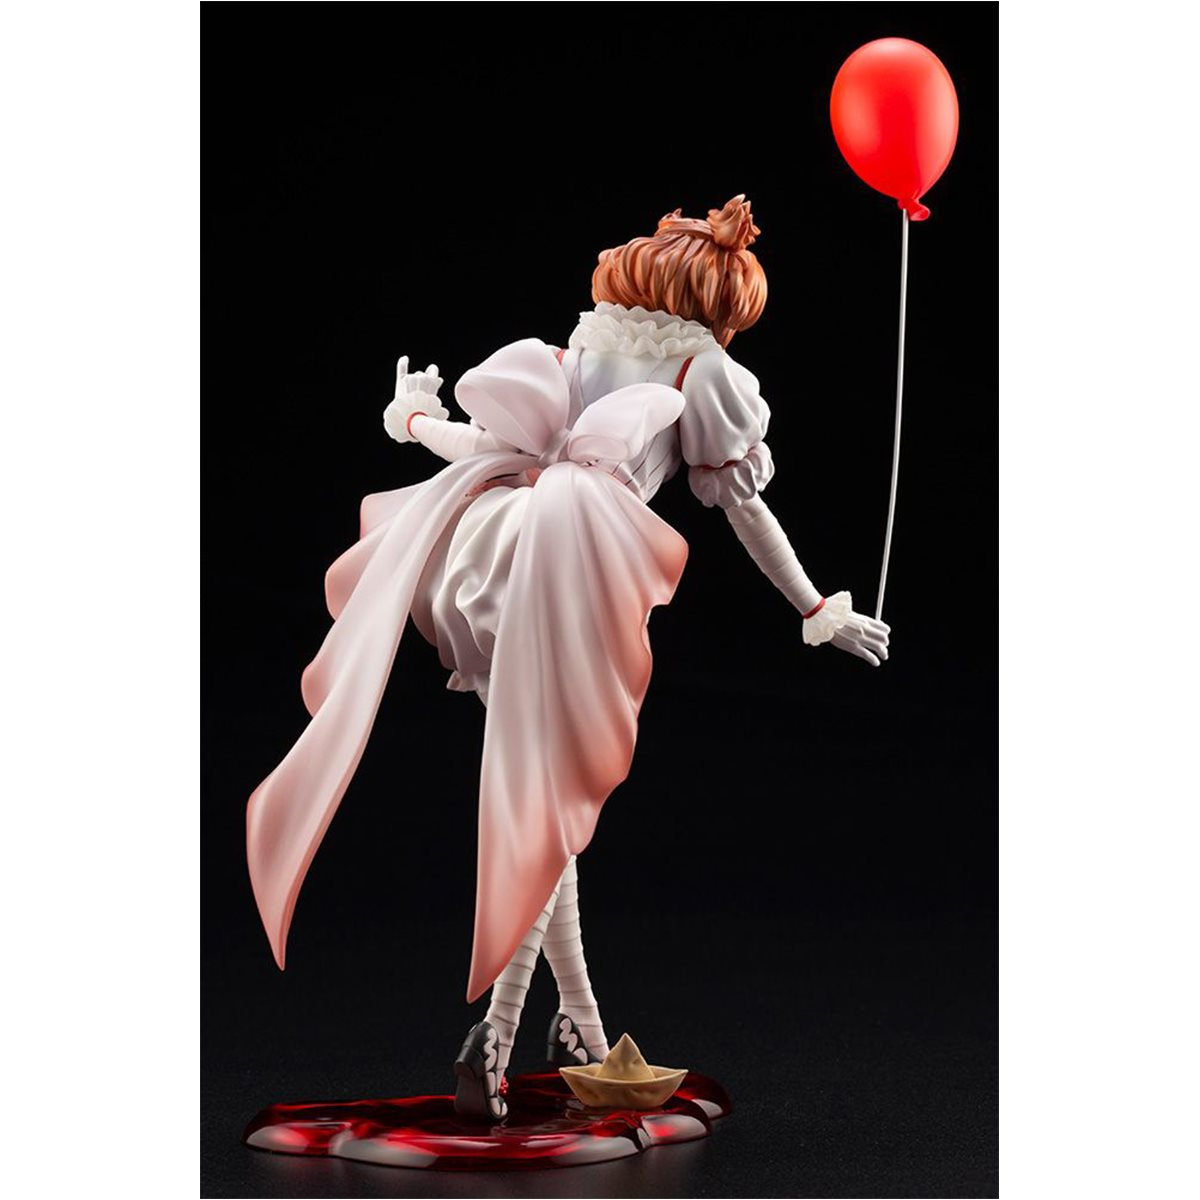 IT Pennywise Bishoujo 1:7 Scale Statue